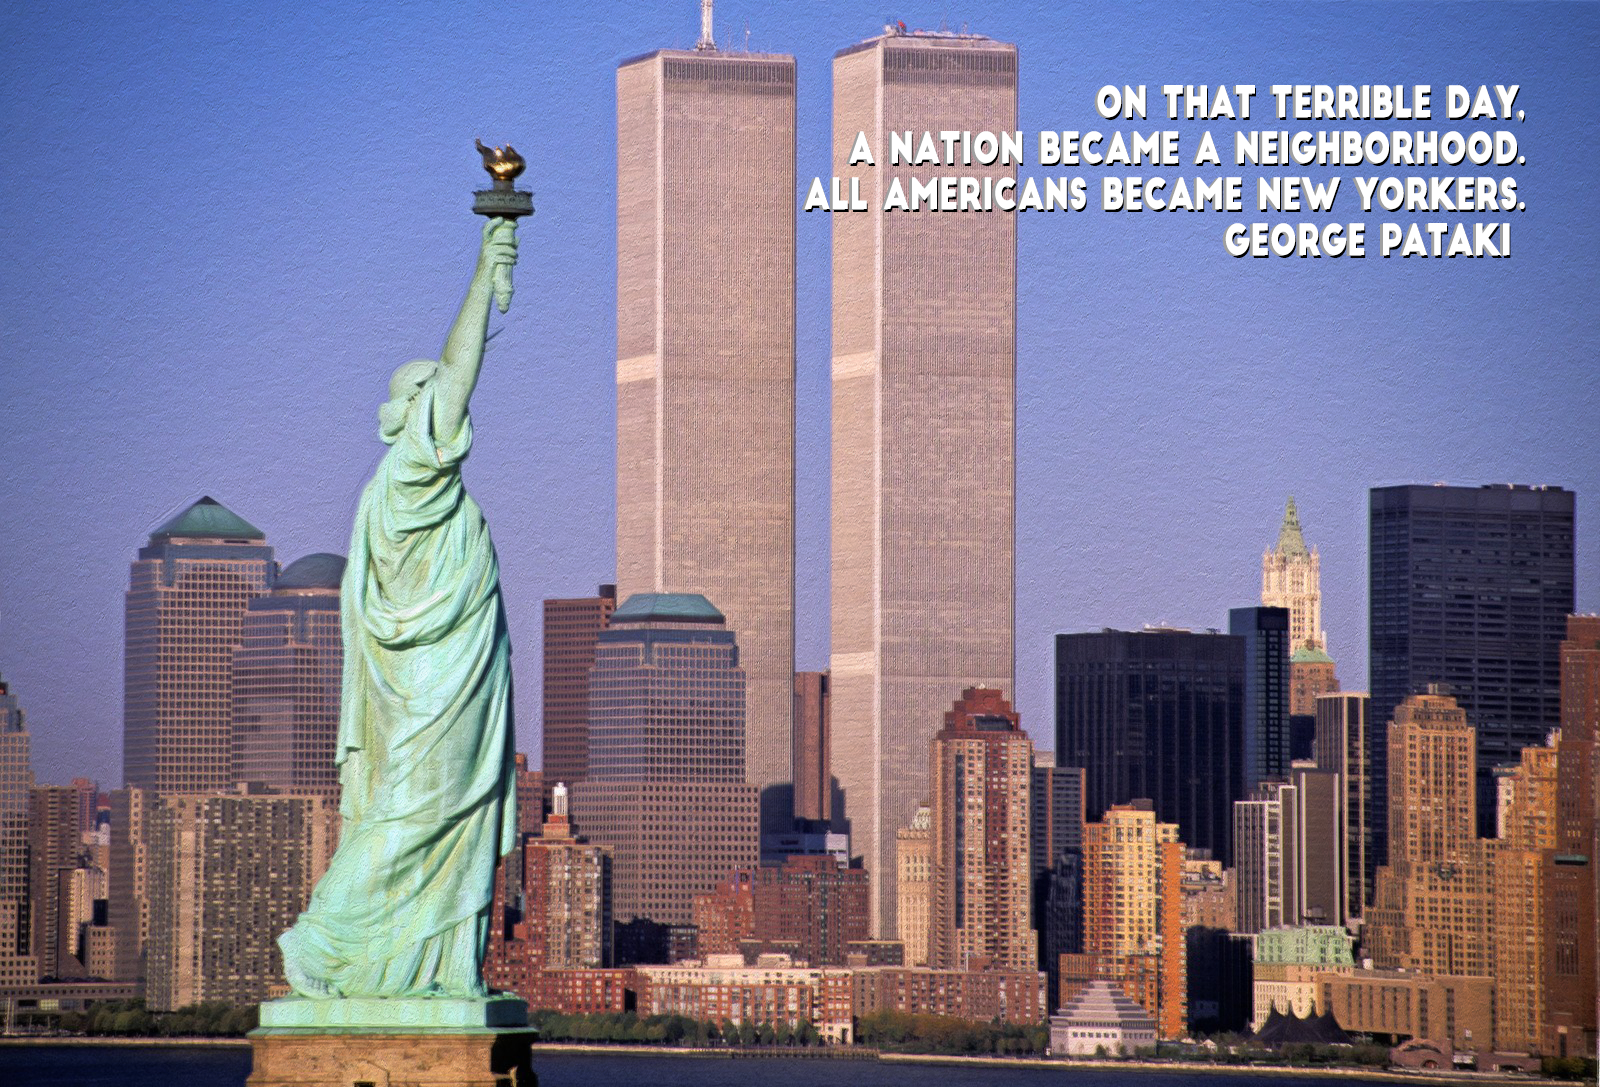 On that terrible day, a nation became a neighborhood. All Americans became New Yorkers. George Pataki [1680 × 1050]